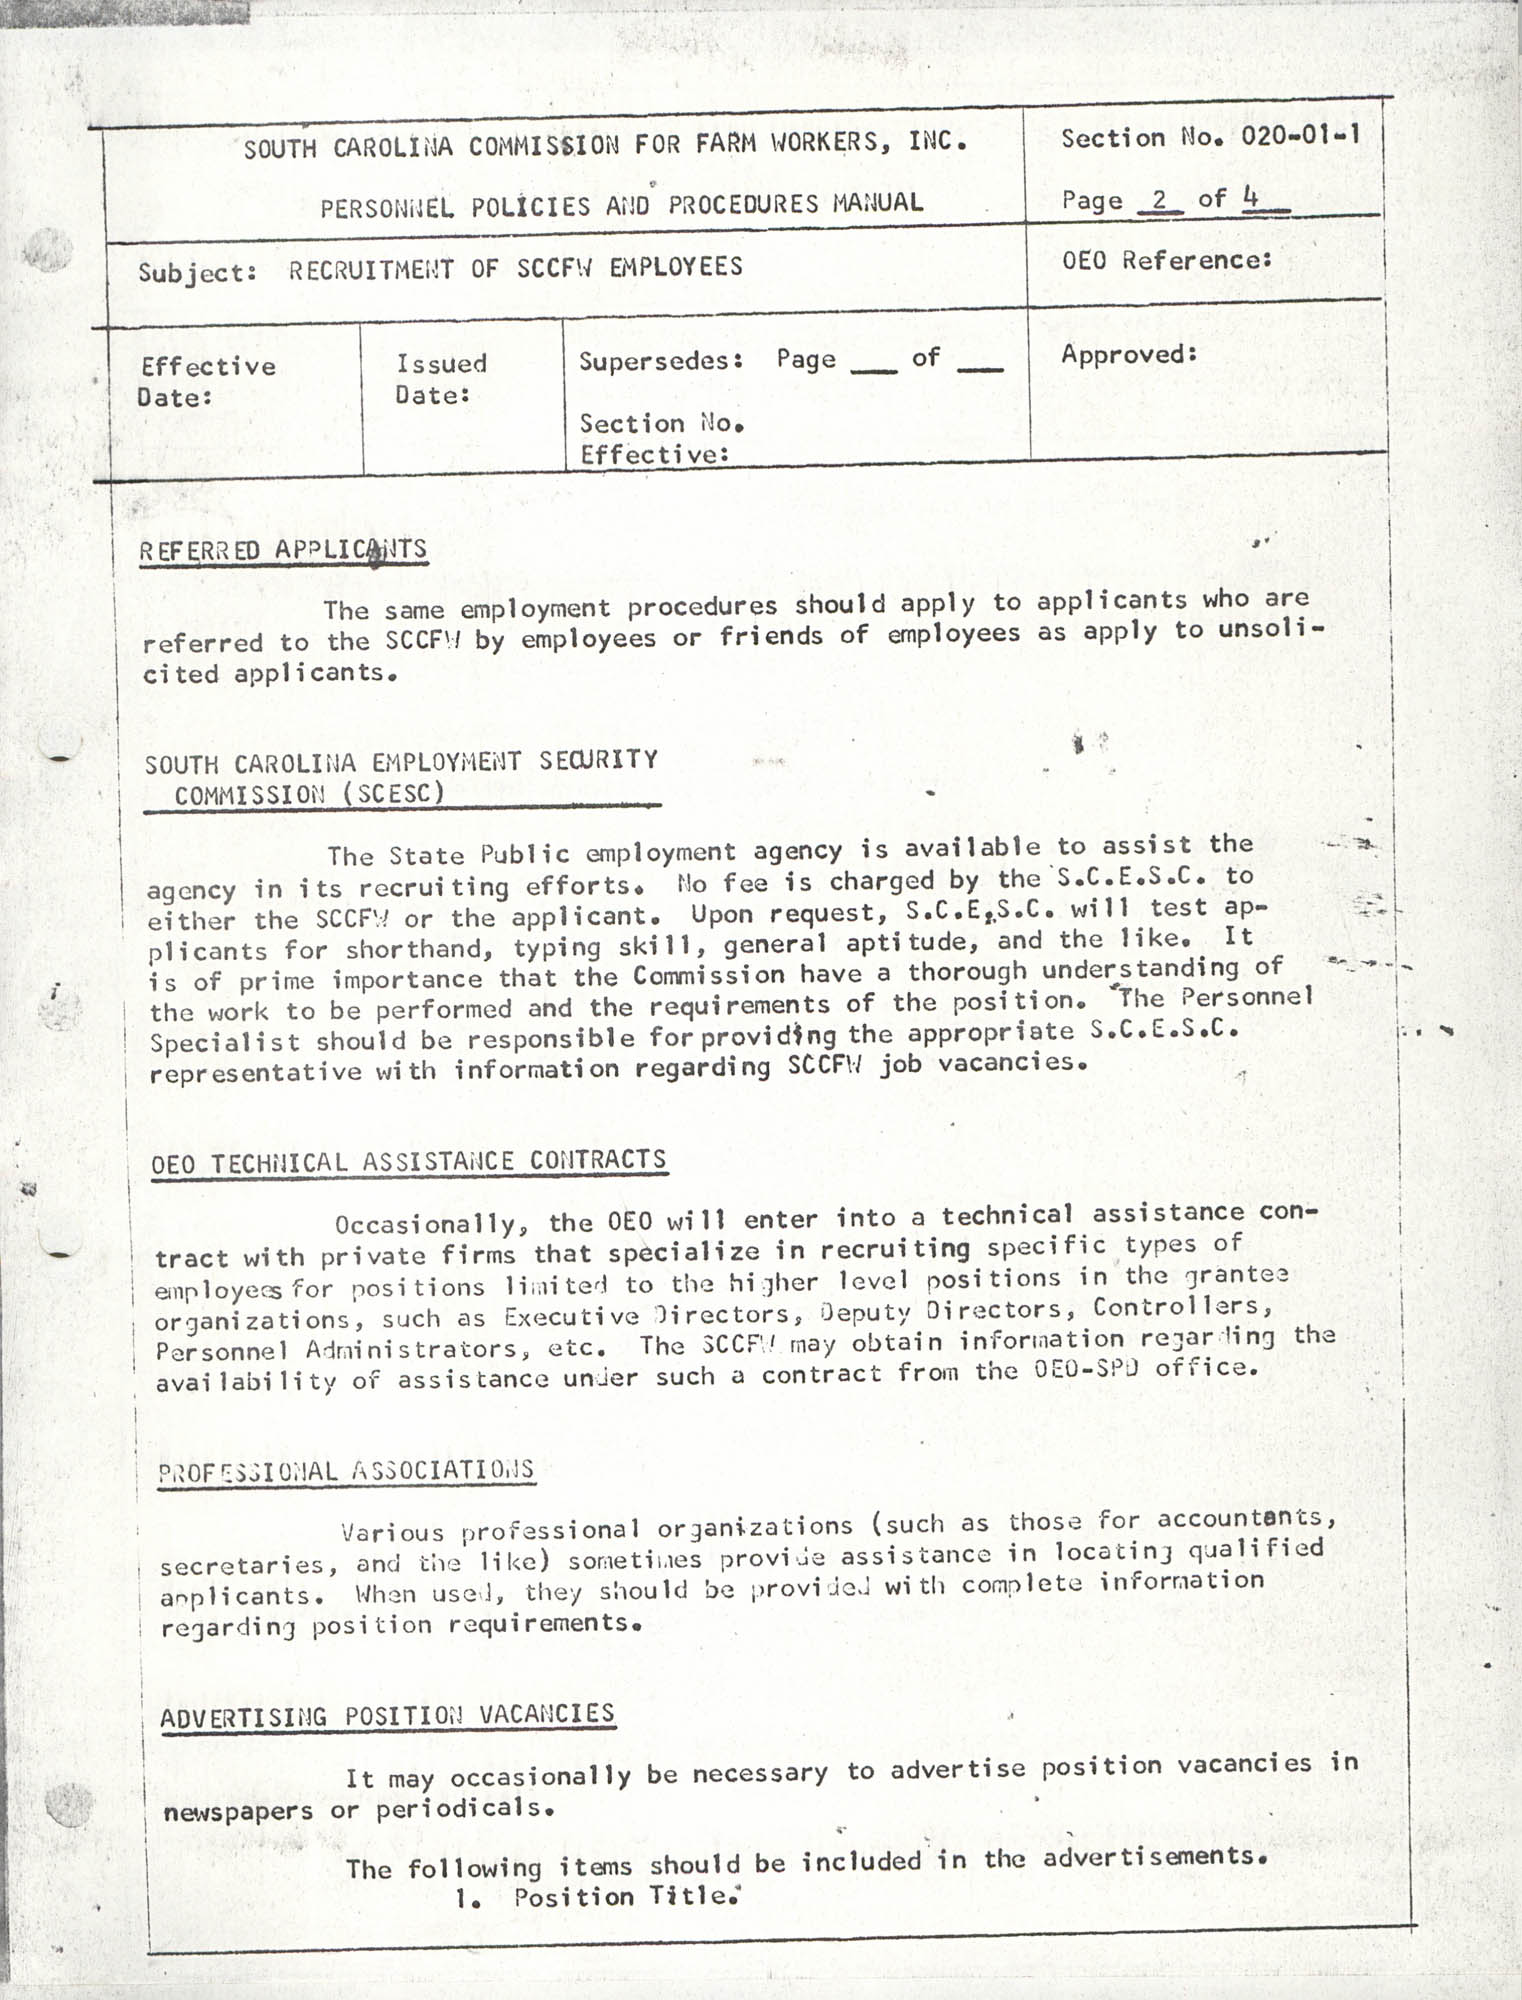 Personnel Policies and Procedures Manual, Section No. 020-01-1, Page 2